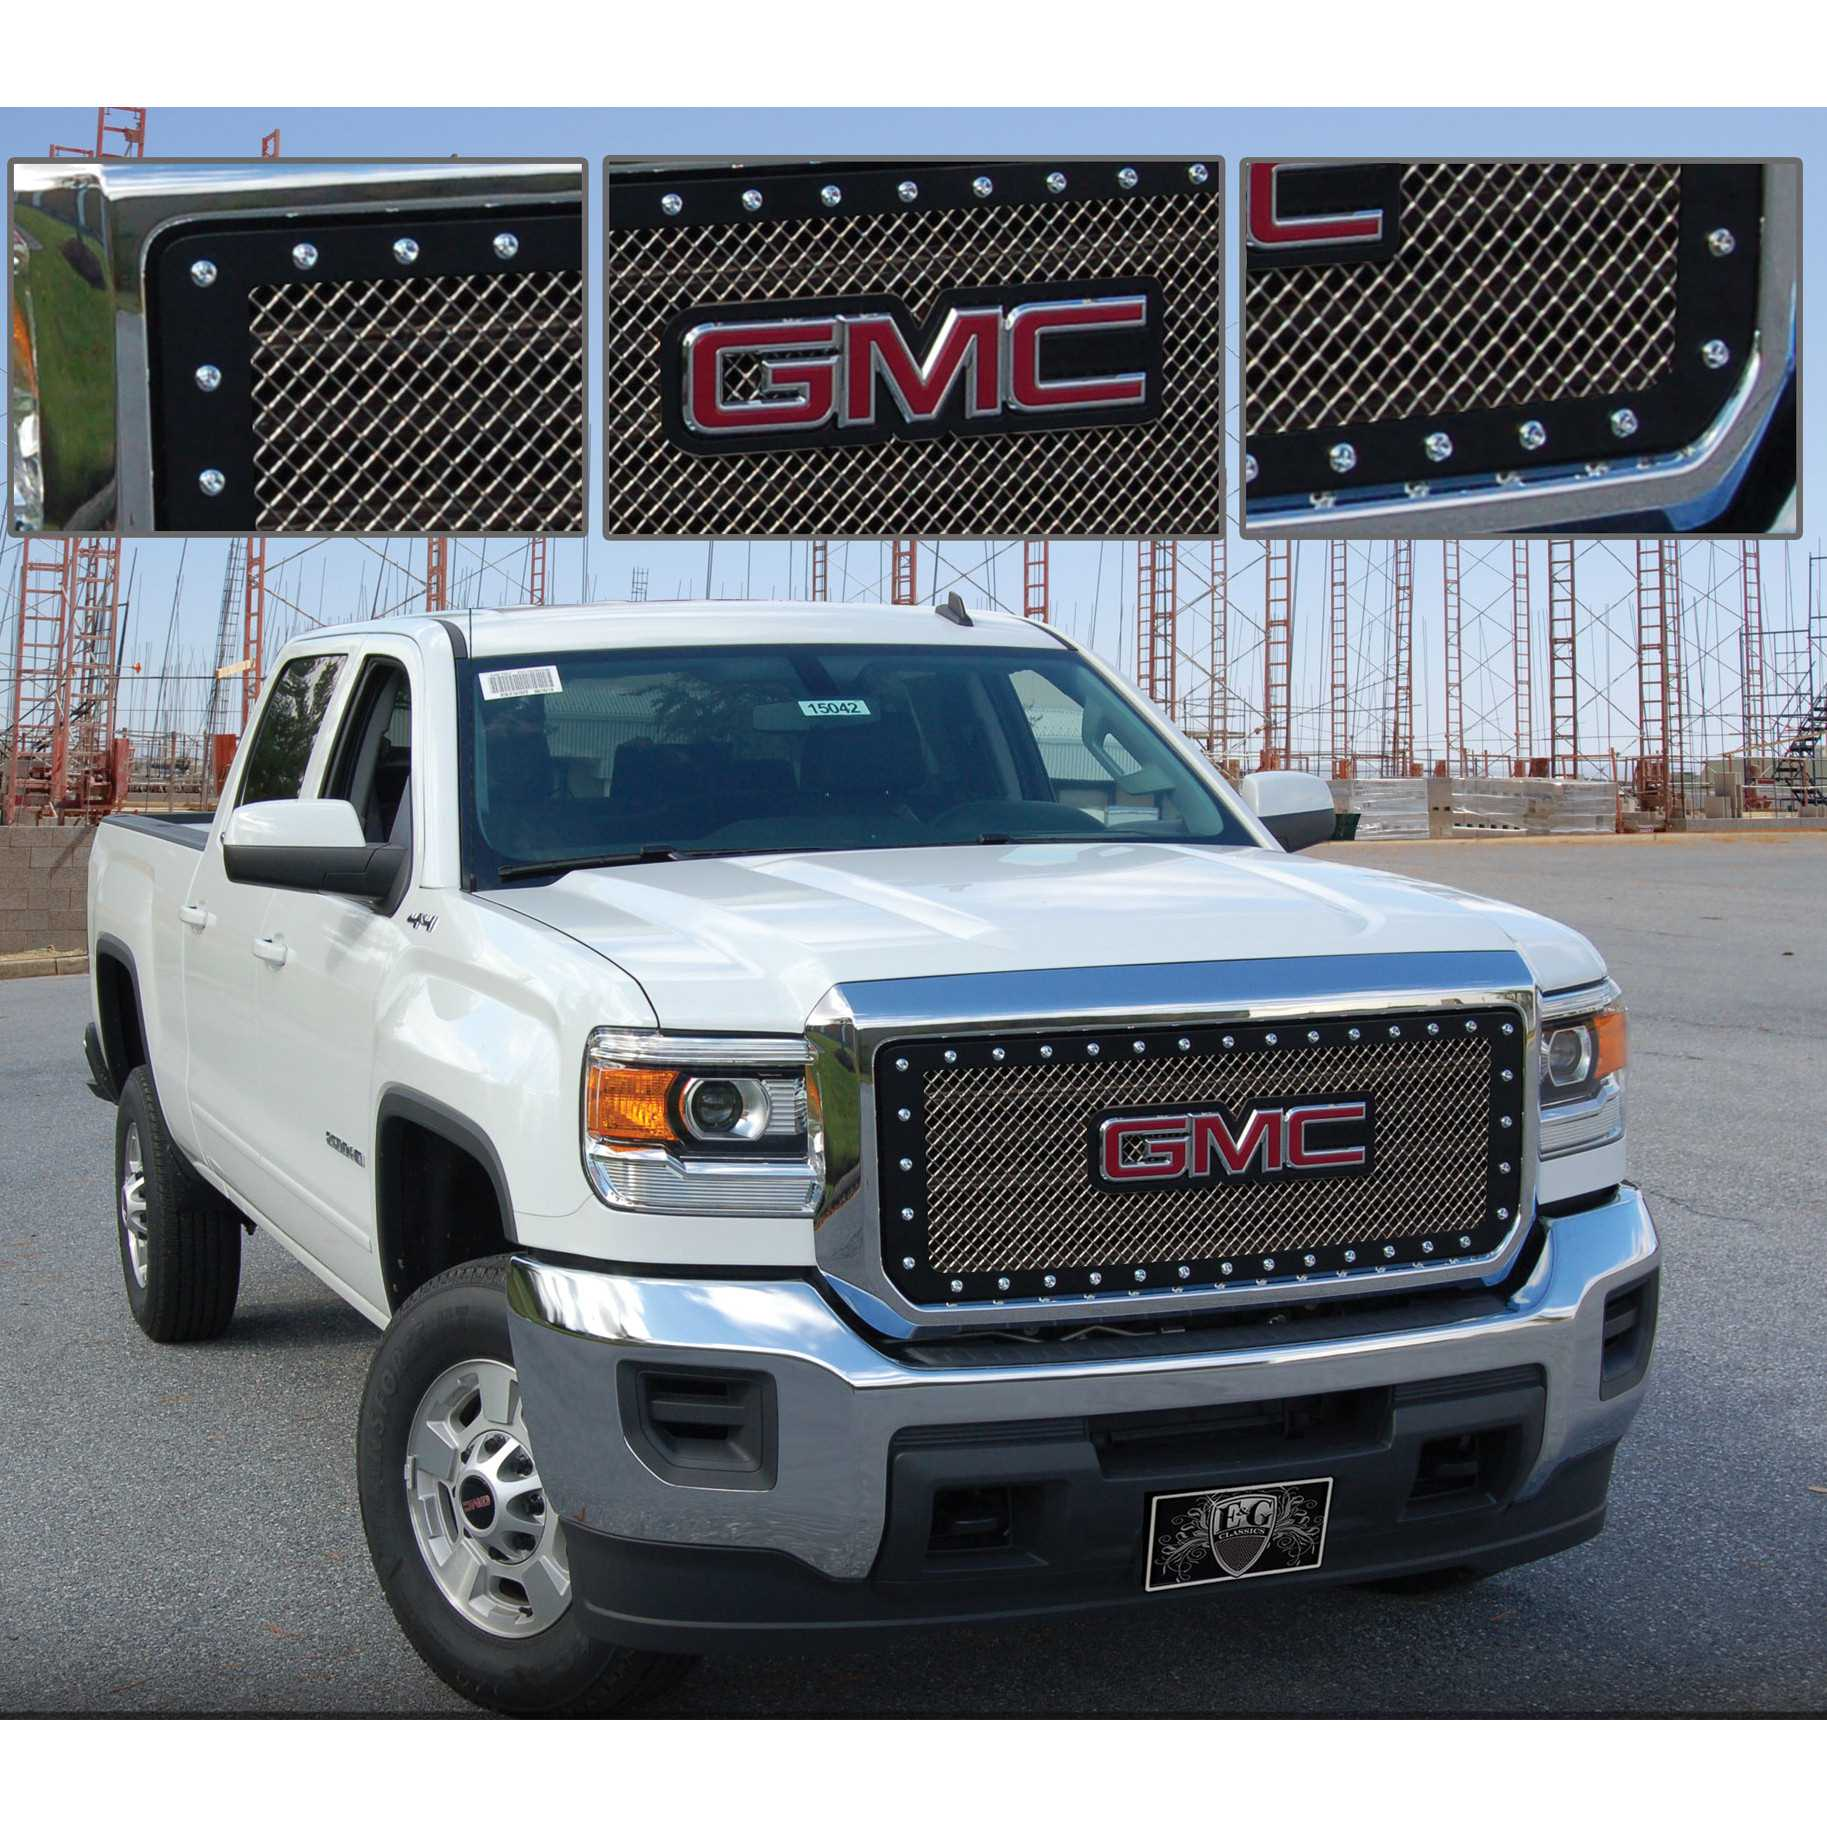 Billet grilles custom grills for your car truck jeep or suv page 27